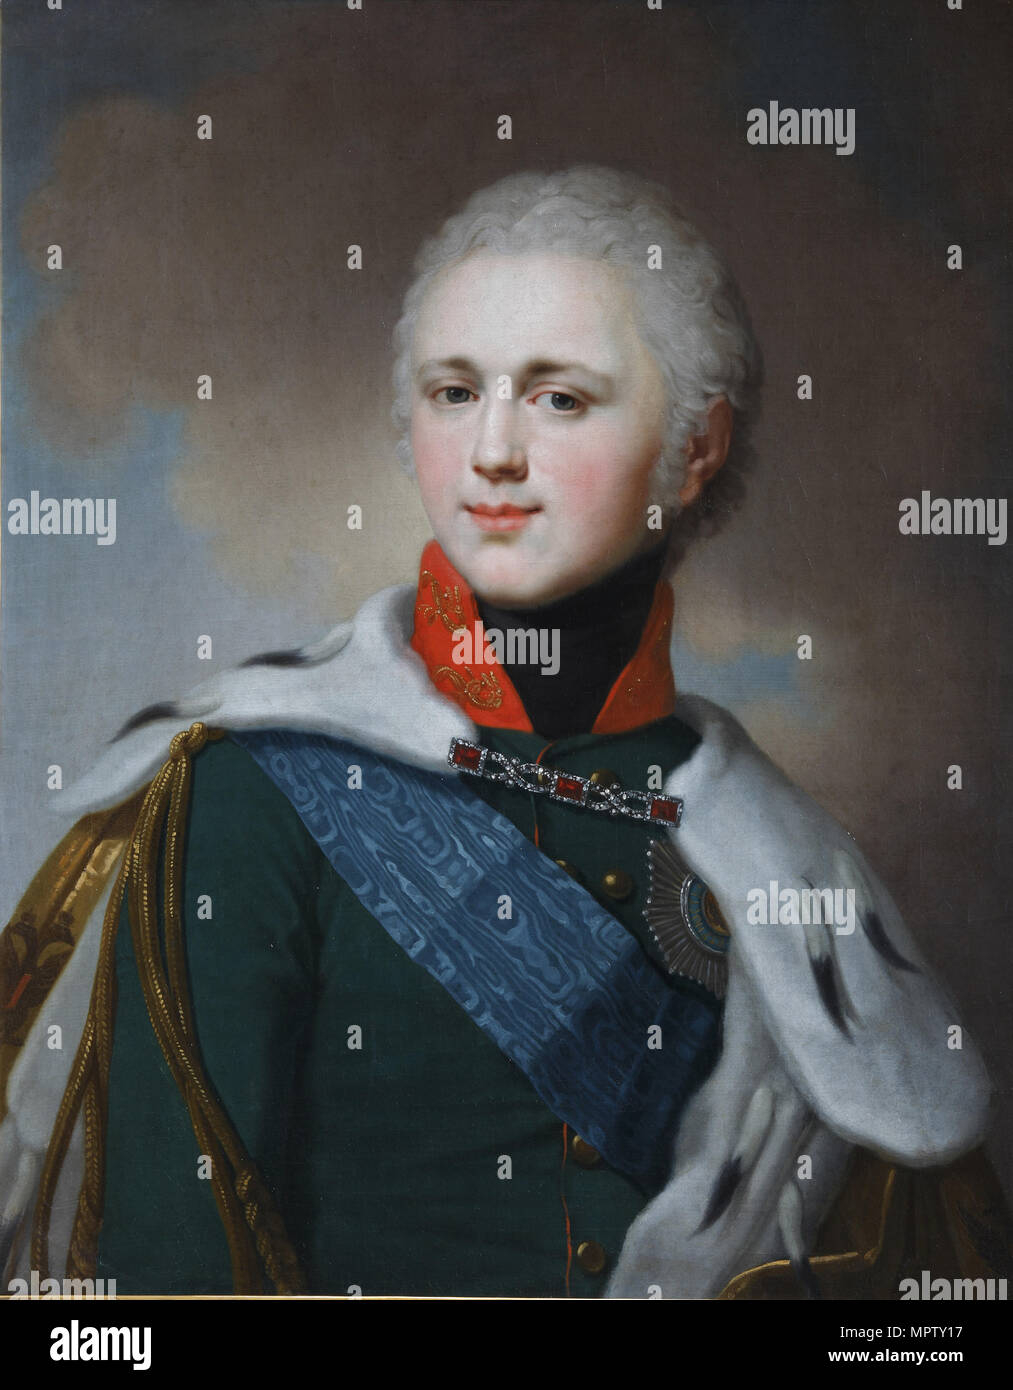 Portrait de l'empereur Alexandre I (1777-1825). Photo Stock